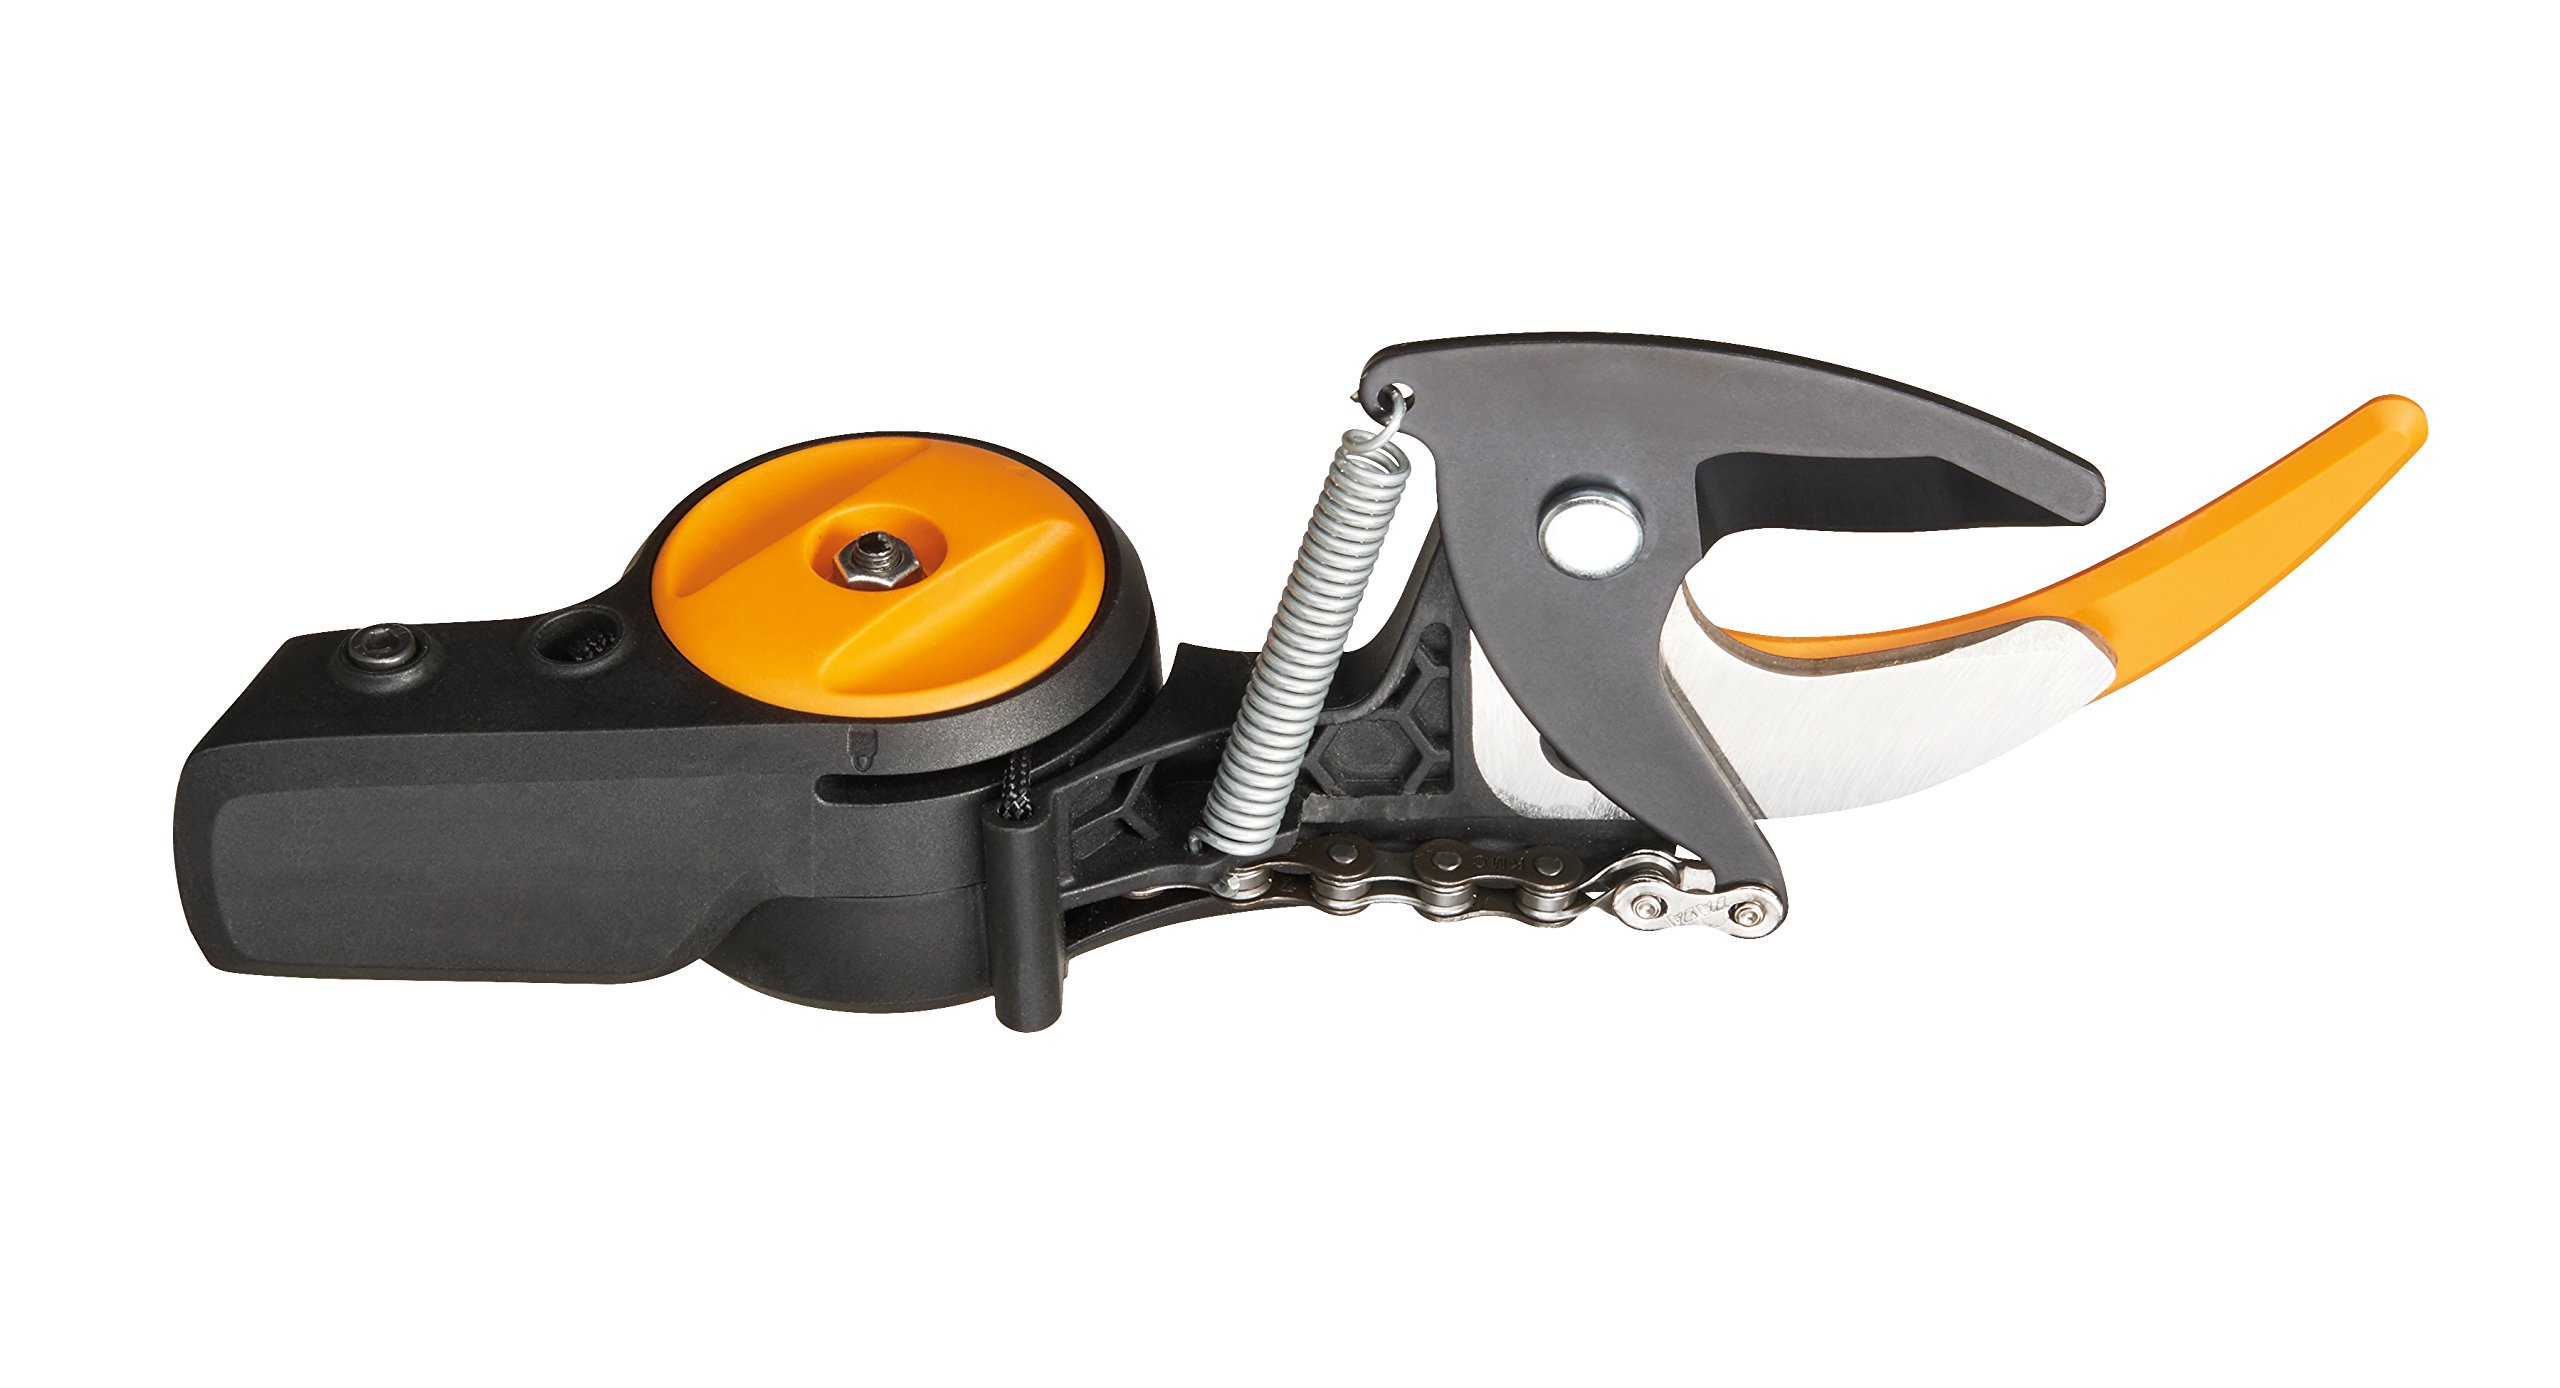 Fiskars Pruning Stik Replacement Head Assembly Kit for The 9234 and 9240 Pruning Stik by Fiskars